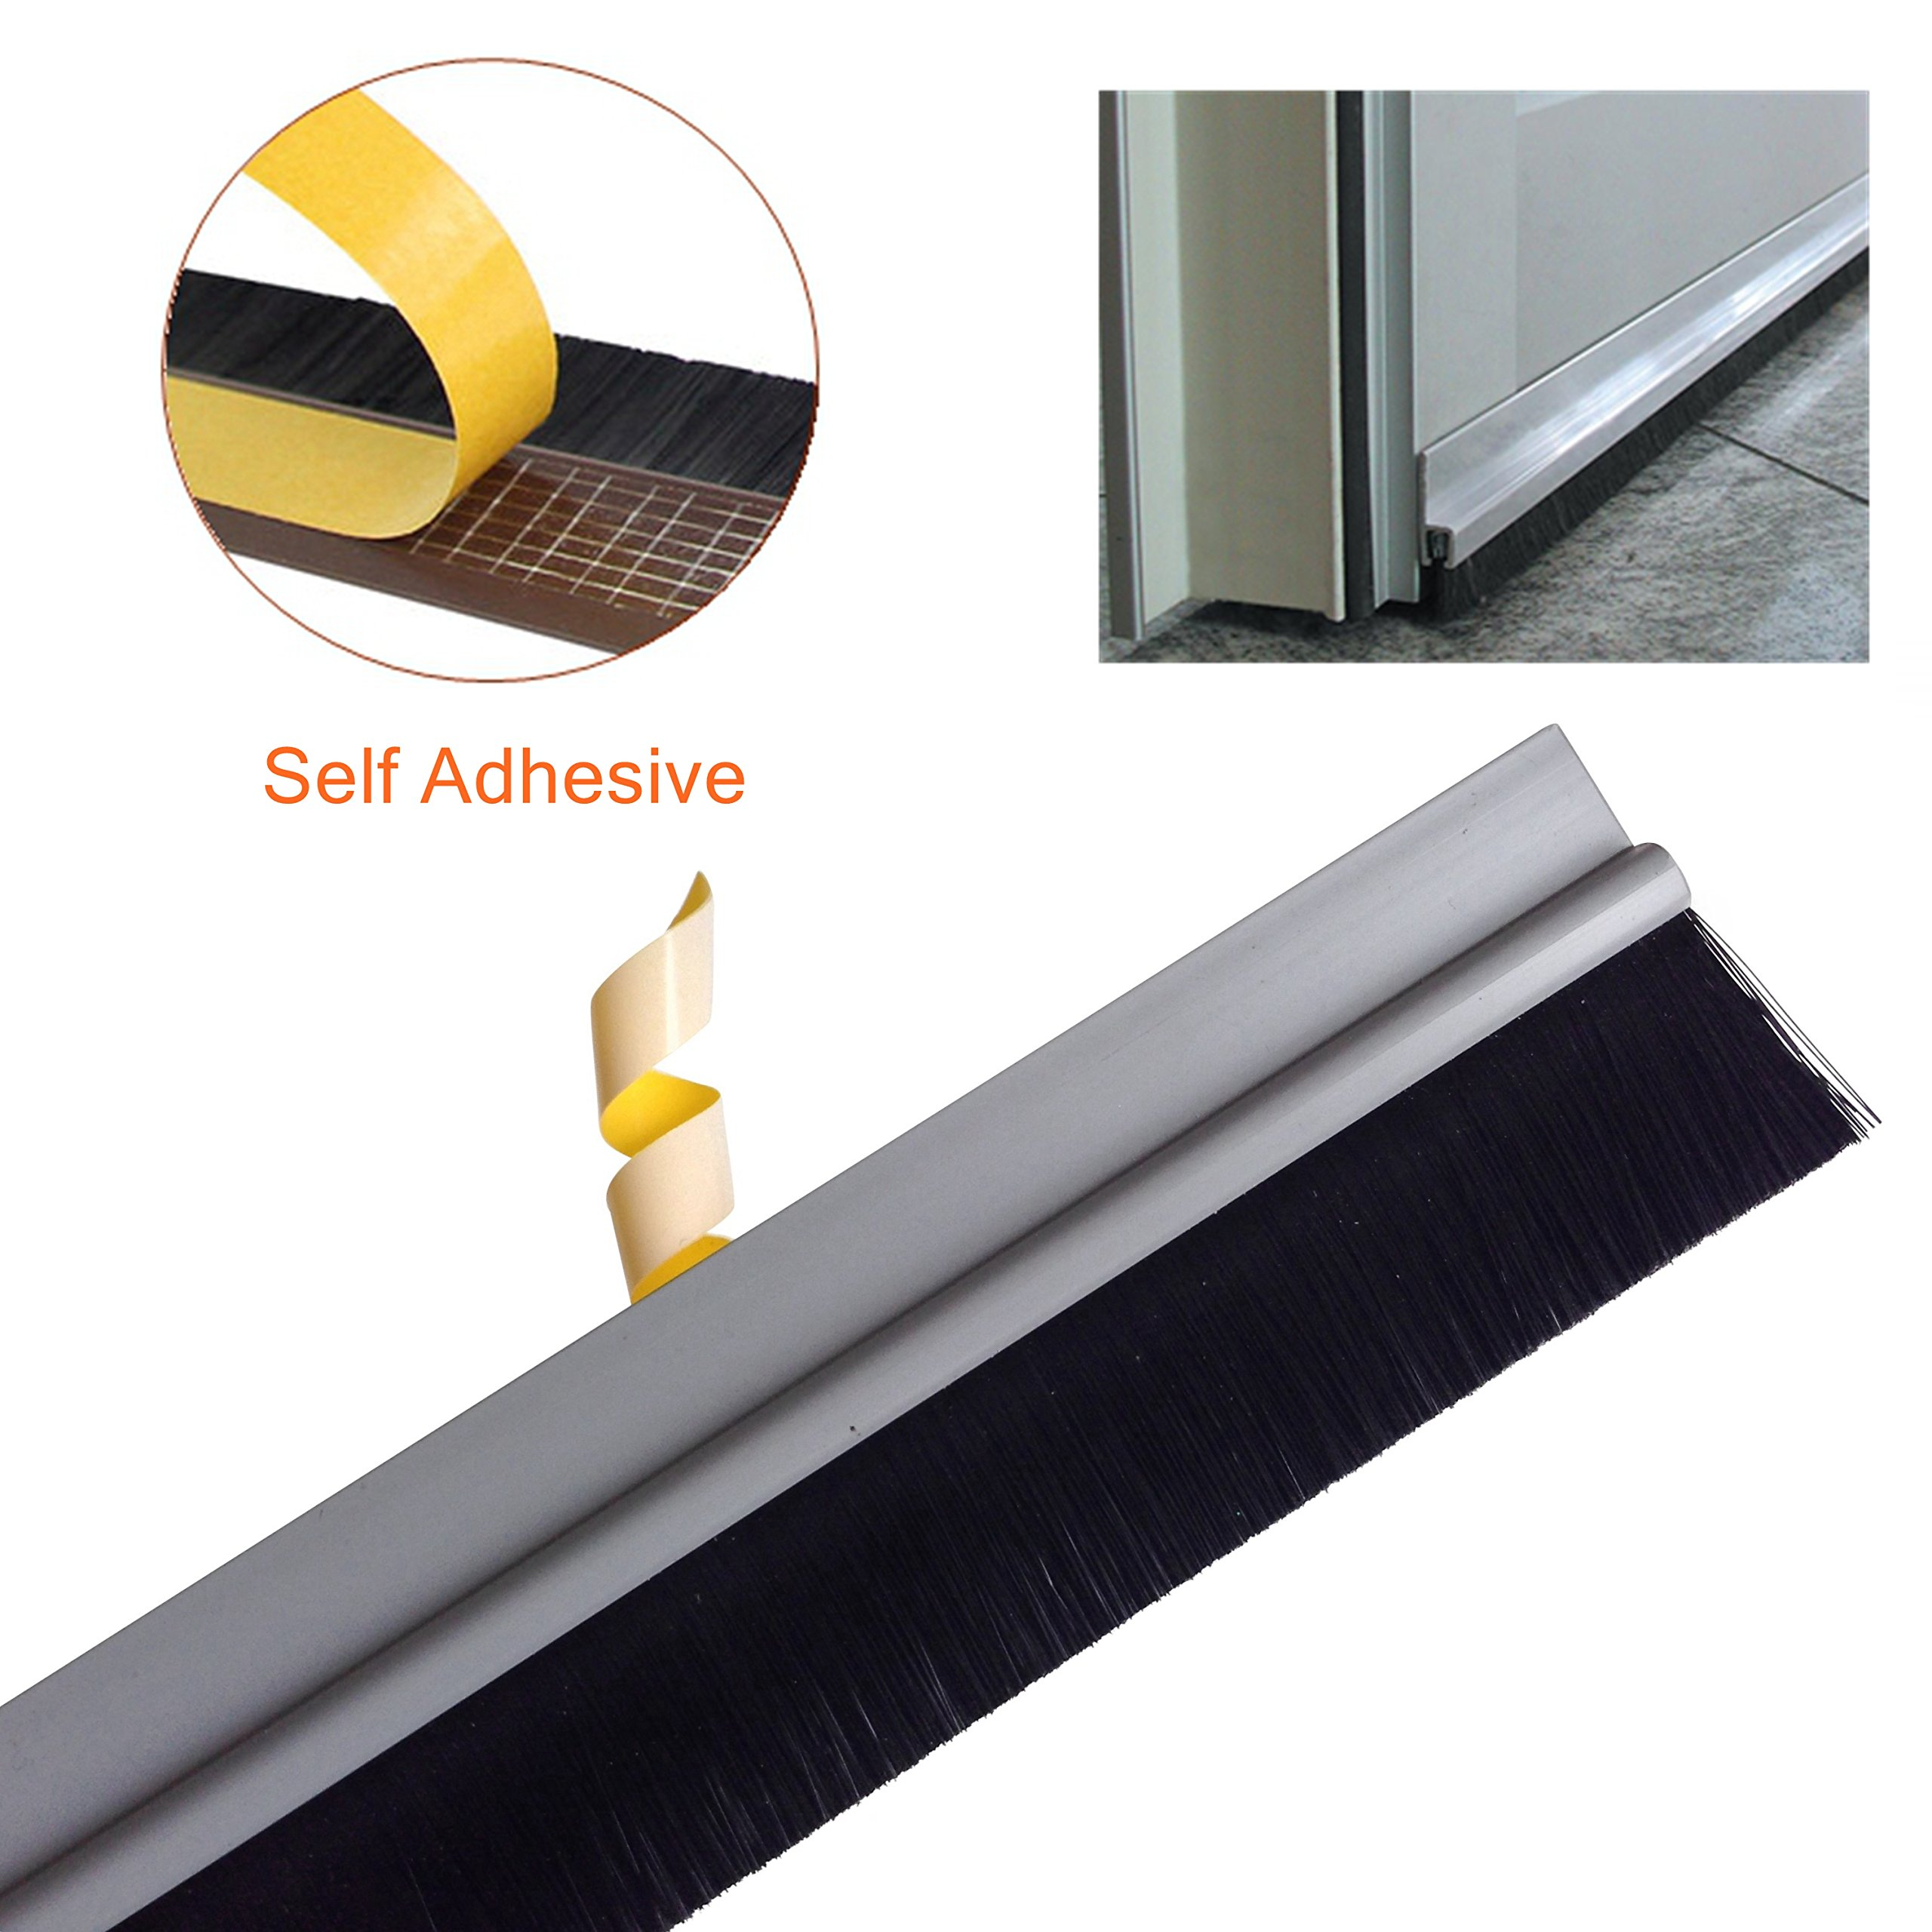 Loobani Aluminum Under Door Bottom Sweep Self Adhesive Seal Strip Draft Excluder Stopper Weather Stripping, 39'' Long X 1.85'' Width Including Brush Height 0.98 Inch by LOOBANI